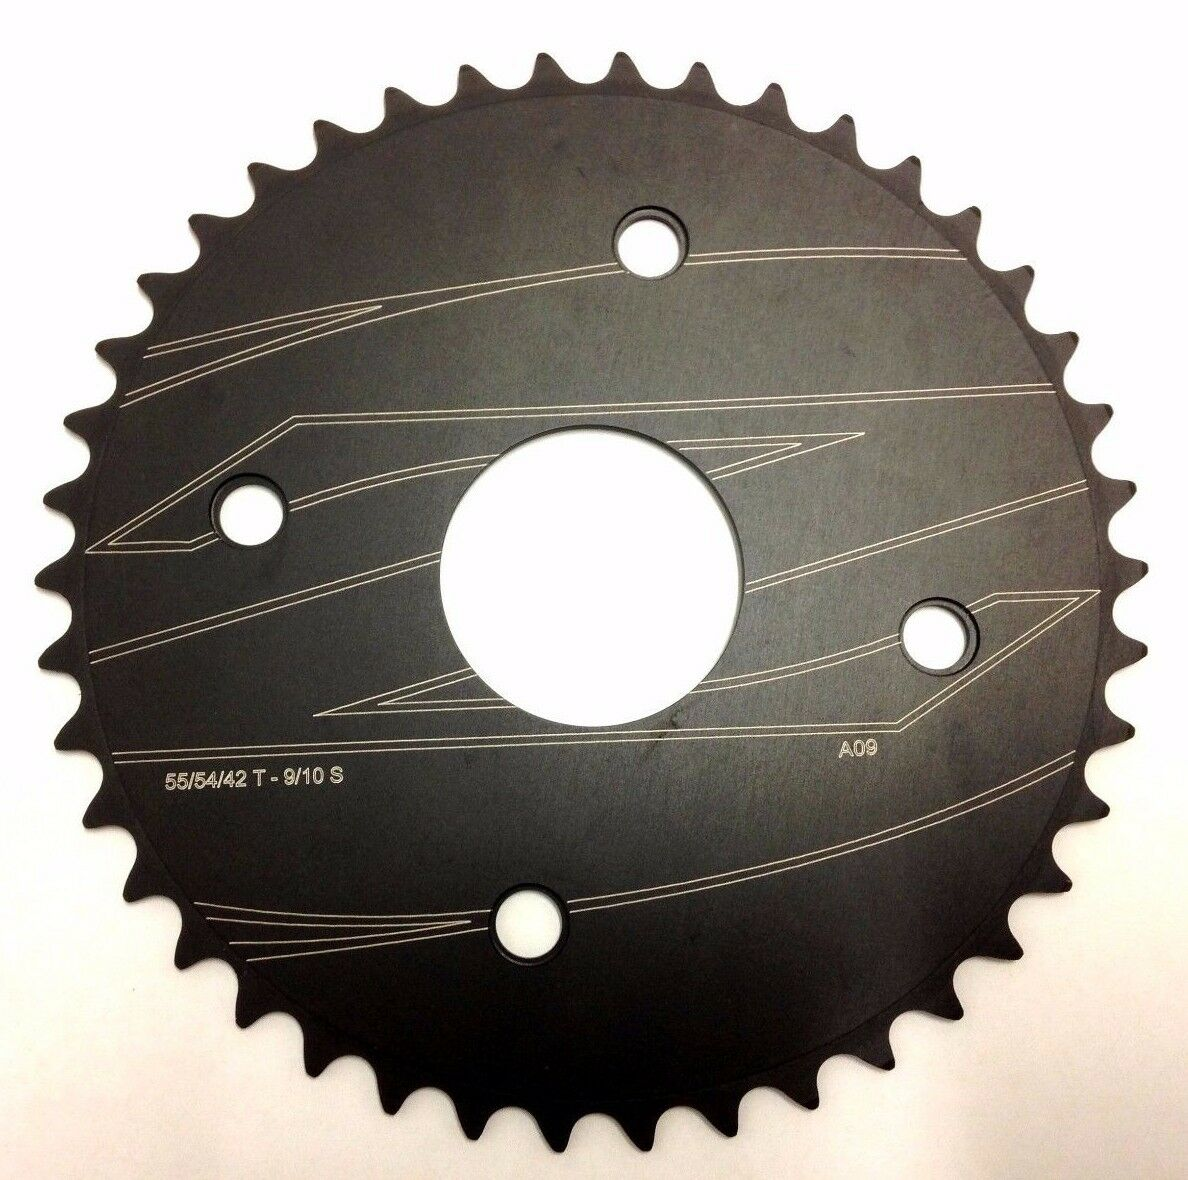 Zipp Vumachrono Inner Chainrings- 42t or 39t